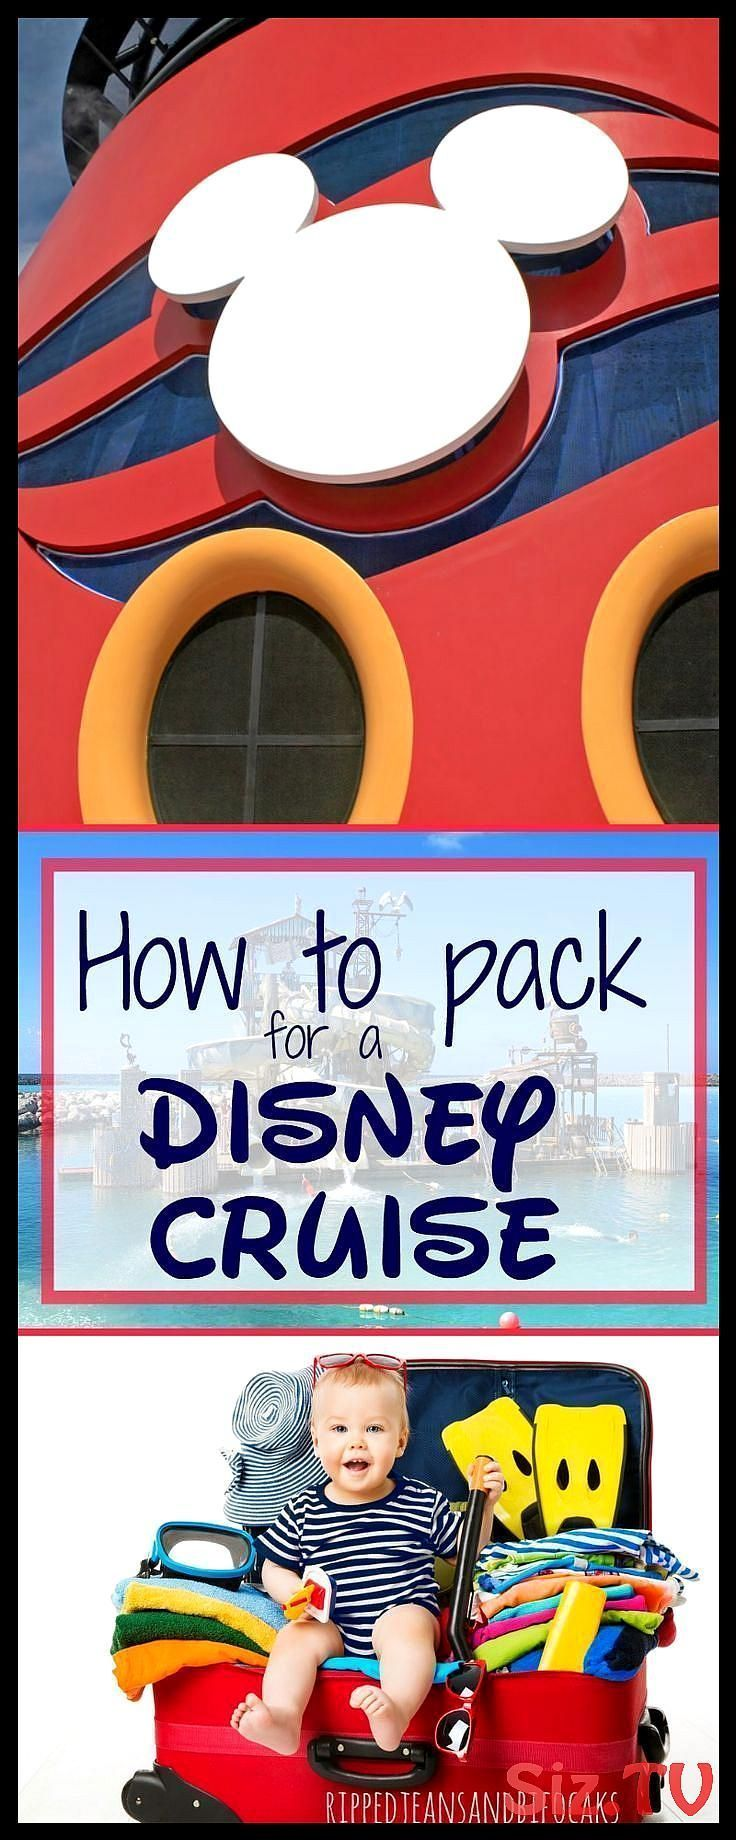 Ultimate Disney Cruise Packing List,  #cruise #Disney #disneyvacationpacking #list #Packing #... #ultimatepackinglist Ultimate Disney Cruise Packing List,  #cruise #Disney #disneyvacationpacking #list #Packing #Ultimate #ultimatepackinglist Ultimate Disney Cruise Packing List,  #cruise #Disney #disneyvacationpacking #list #Packing #... #ultimatepackinglist Ultimate Disney Cruise Packing List,  #cruise #Disney #disneyvacationpacking #list #Packing #Ultimate #ultimatepackinglist